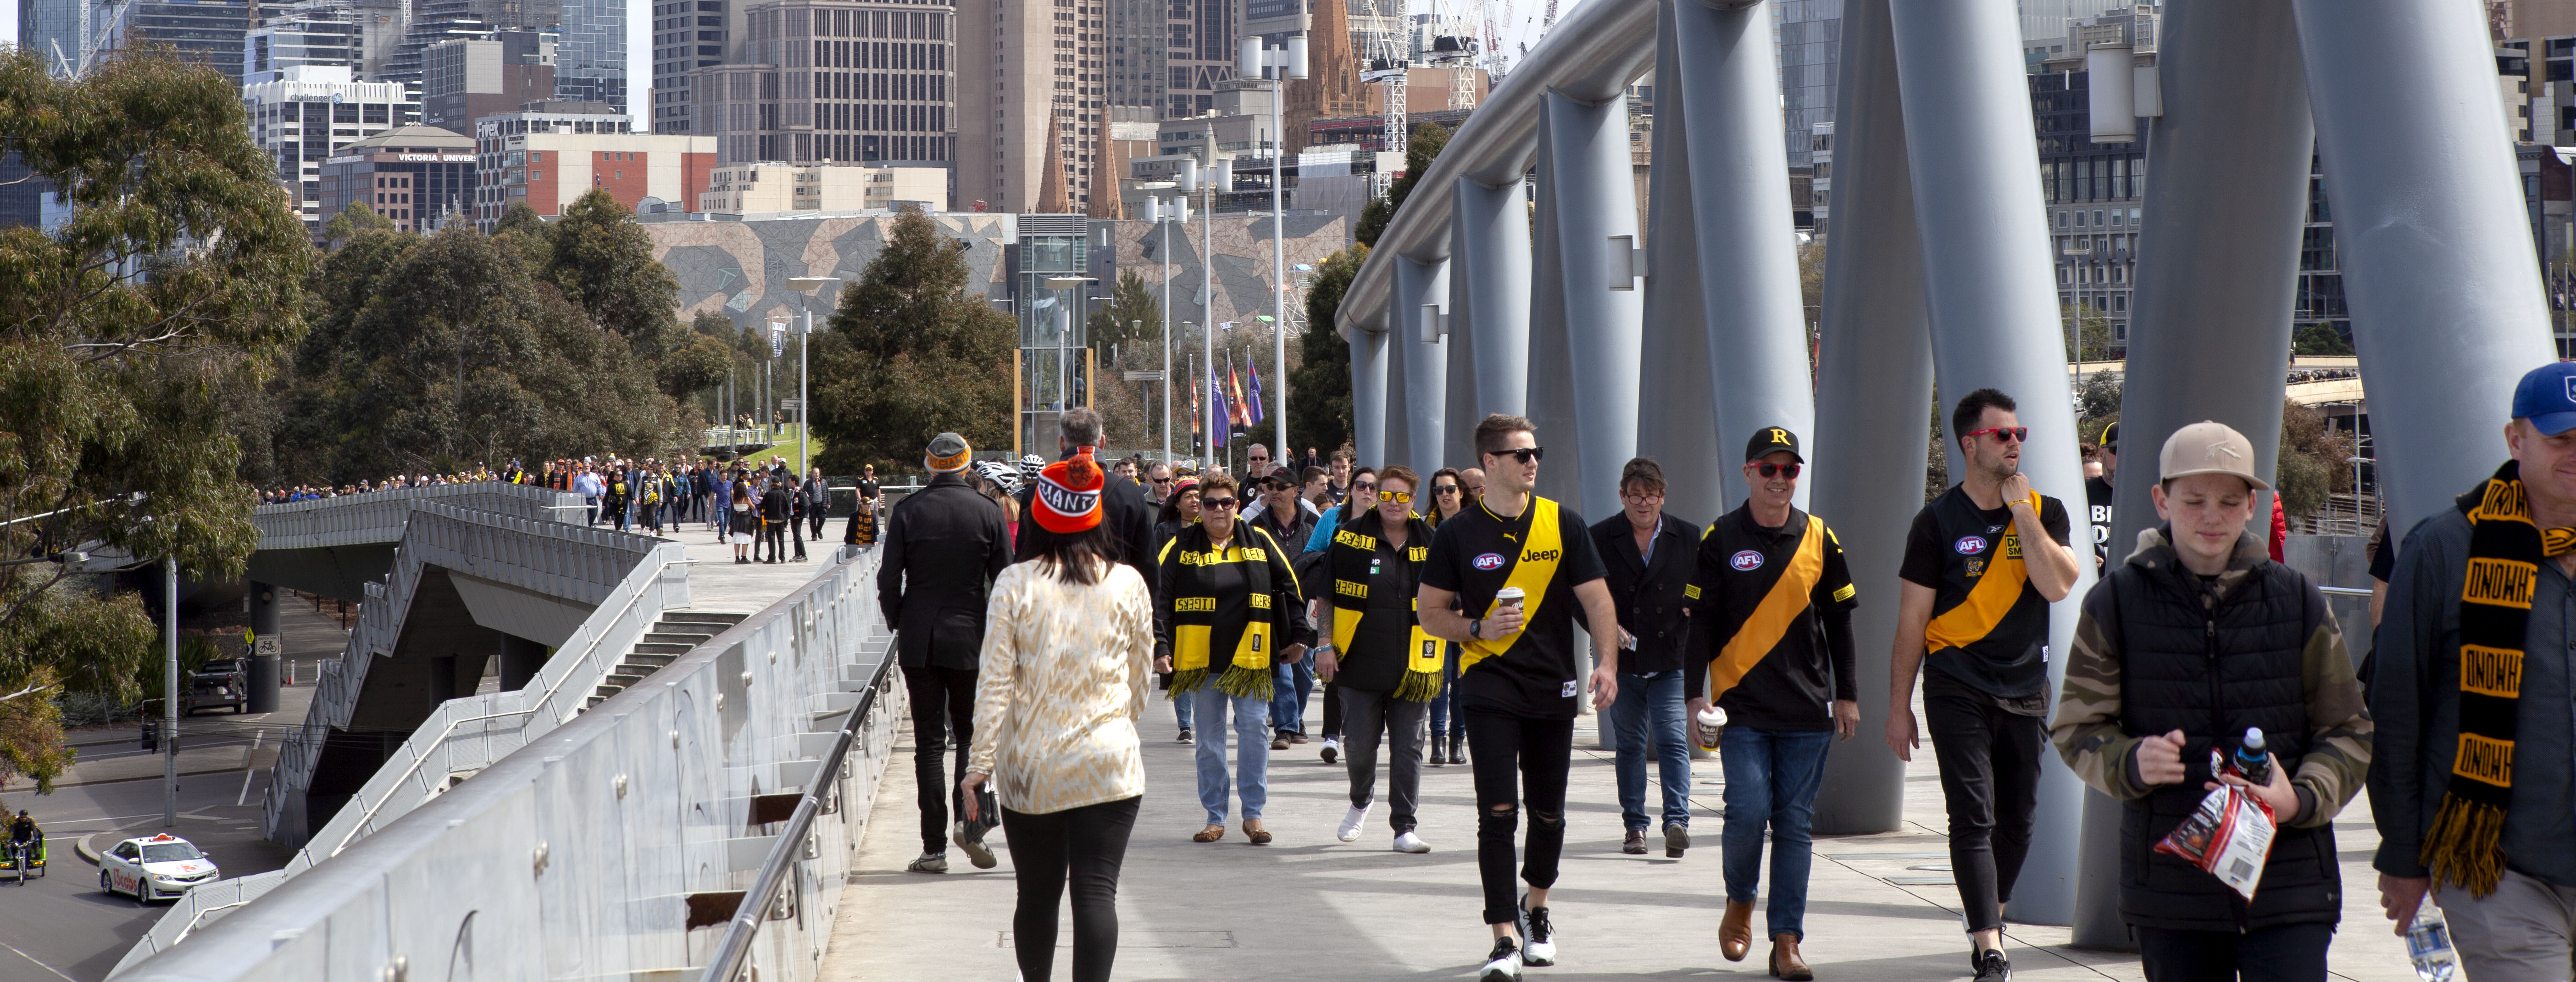 A lonely Giants fan walks amongst the sea of yellow and black heading to the MCG to watch the AFL Grand Final.